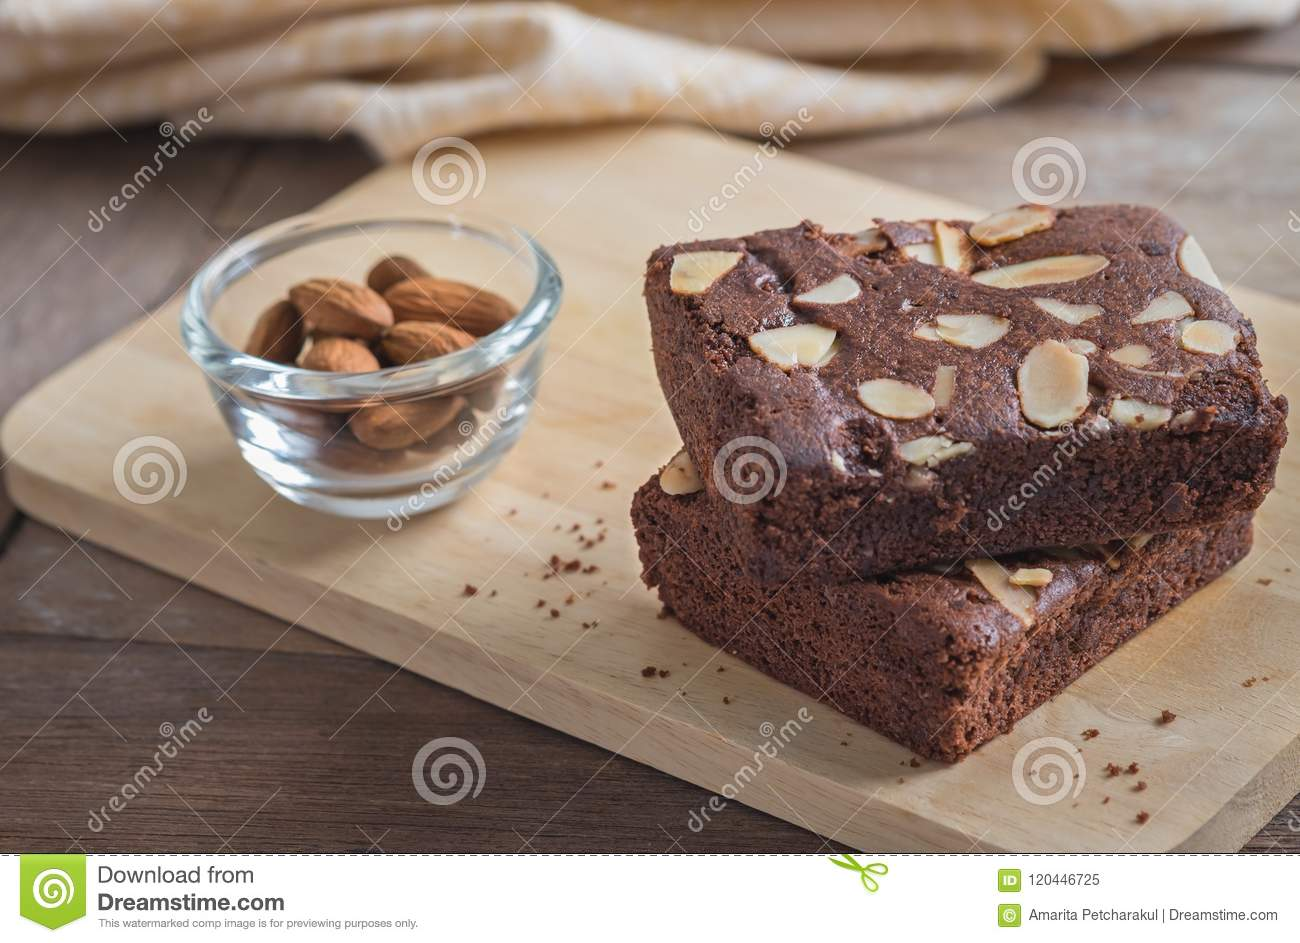 Chocolate-Almond Brownie Heart Chocolate-Almond Brownie Heart new picture